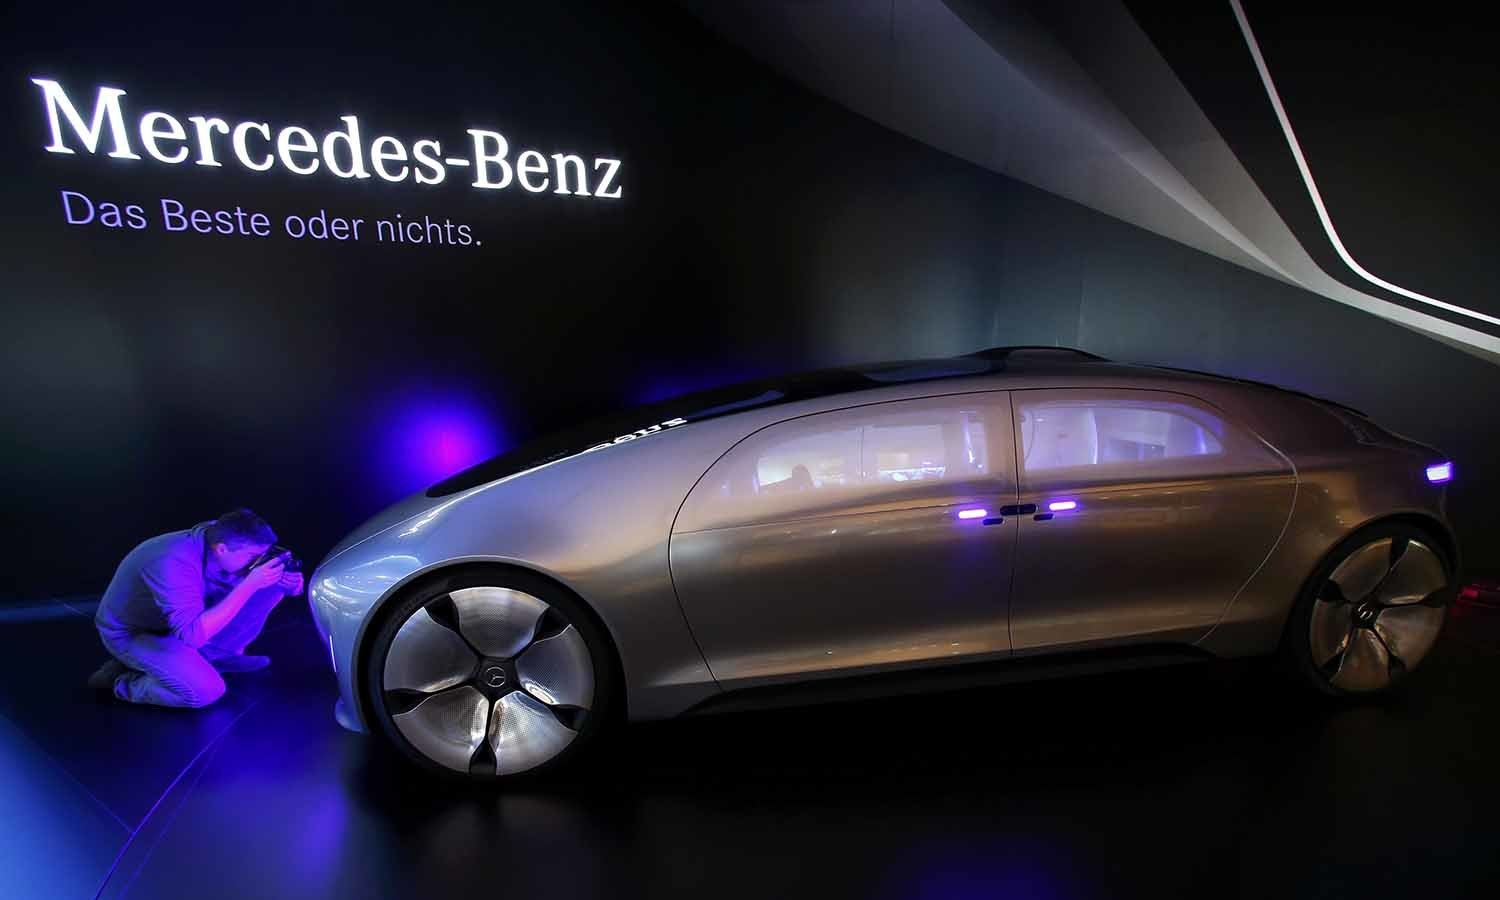 The Mercedes-Benz F 015 Luxury in Motion concept car is pictured at the booth of Mercedes-Benz during the media day at the Frankfurt Motor Show (IAA). ─ Reuters